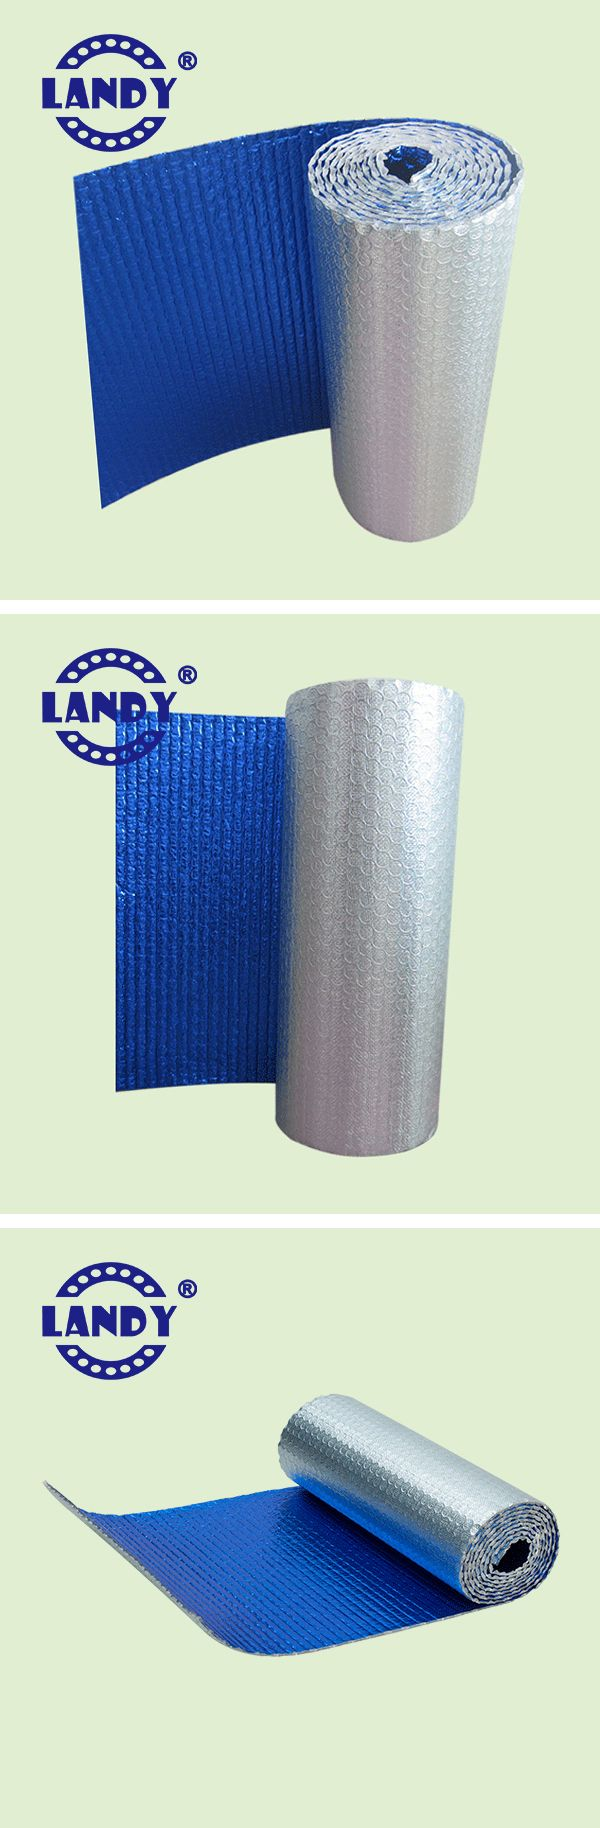 Colored Coated Aluminum Foil Big Bubble Insulation Material #thermal insulation #bubble insulation #steel roofing